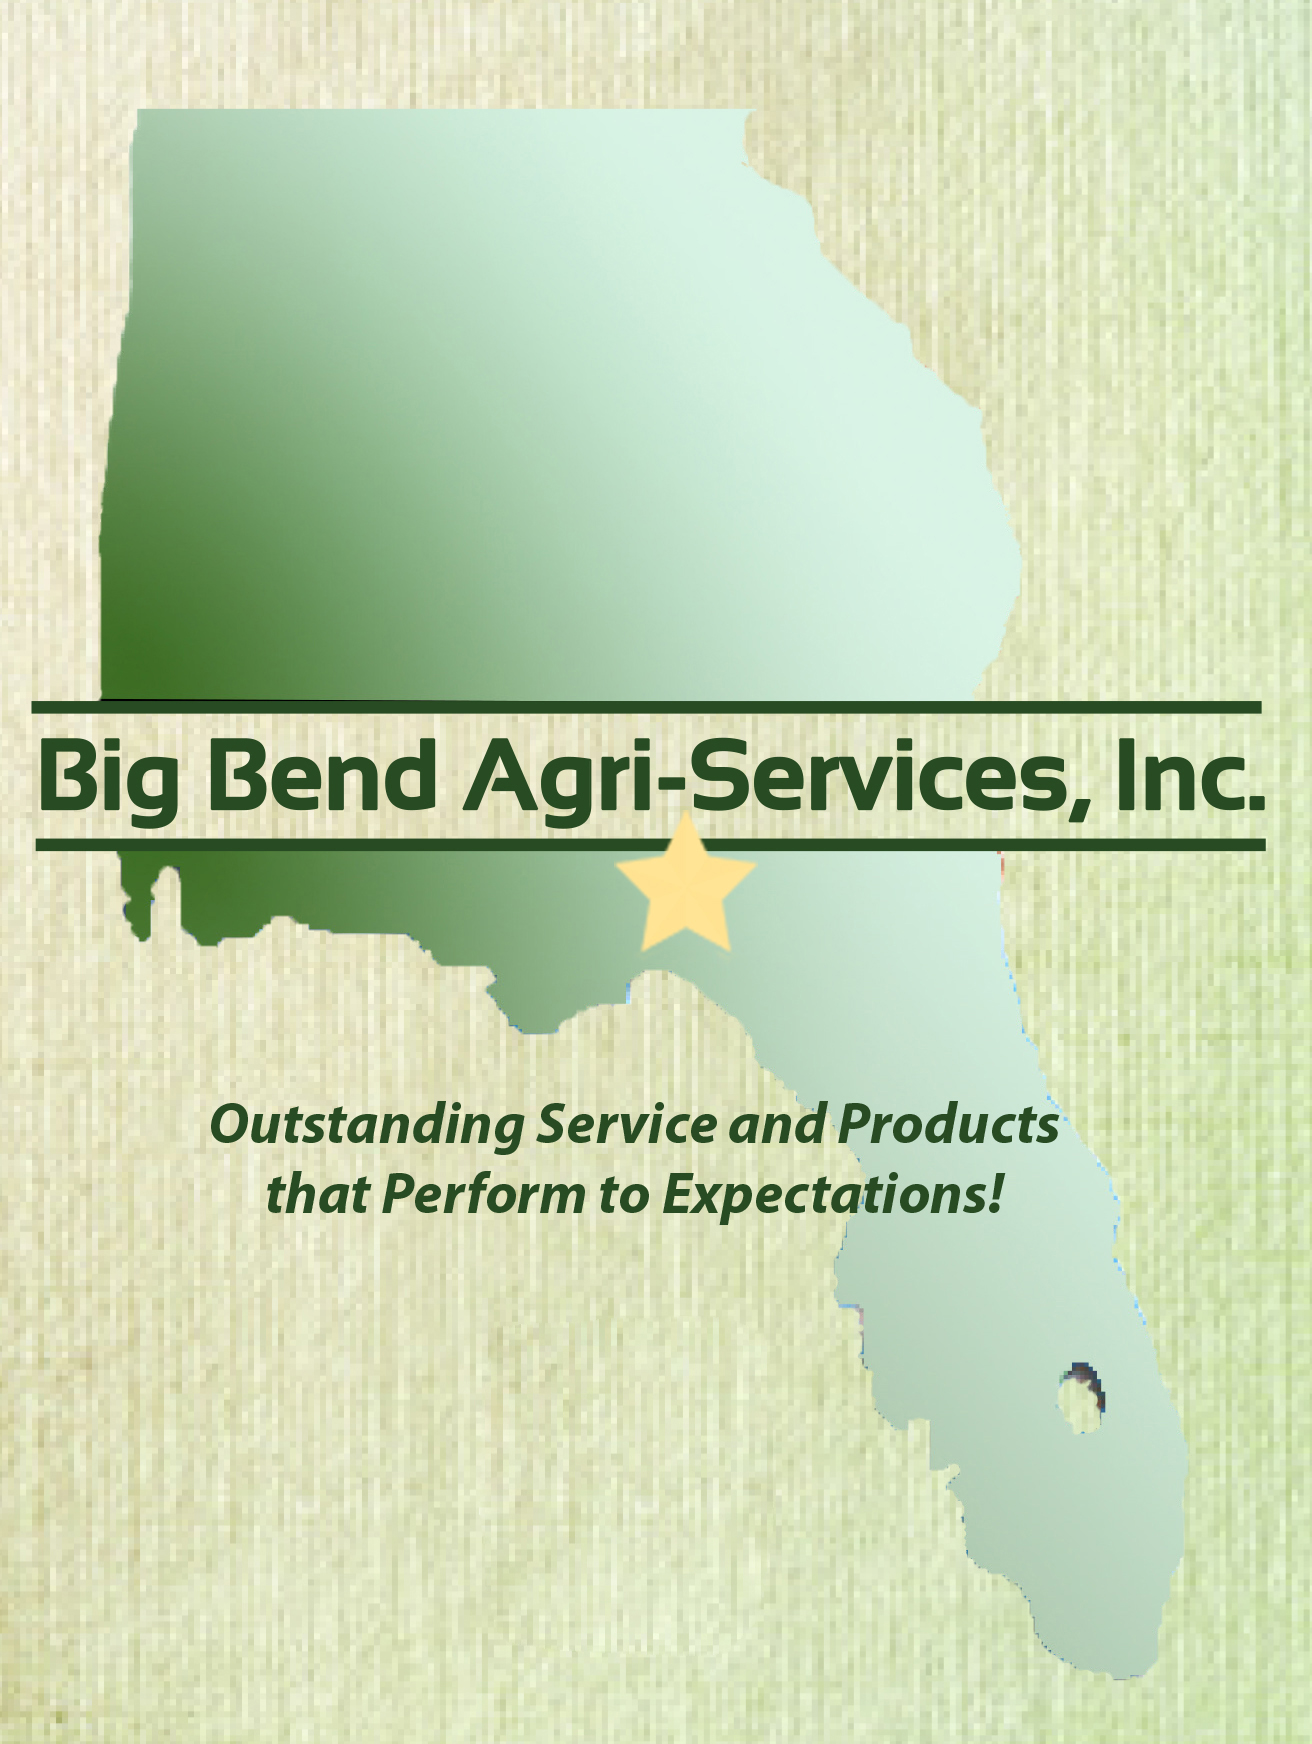 Big Bend Agri-Services, Inc.